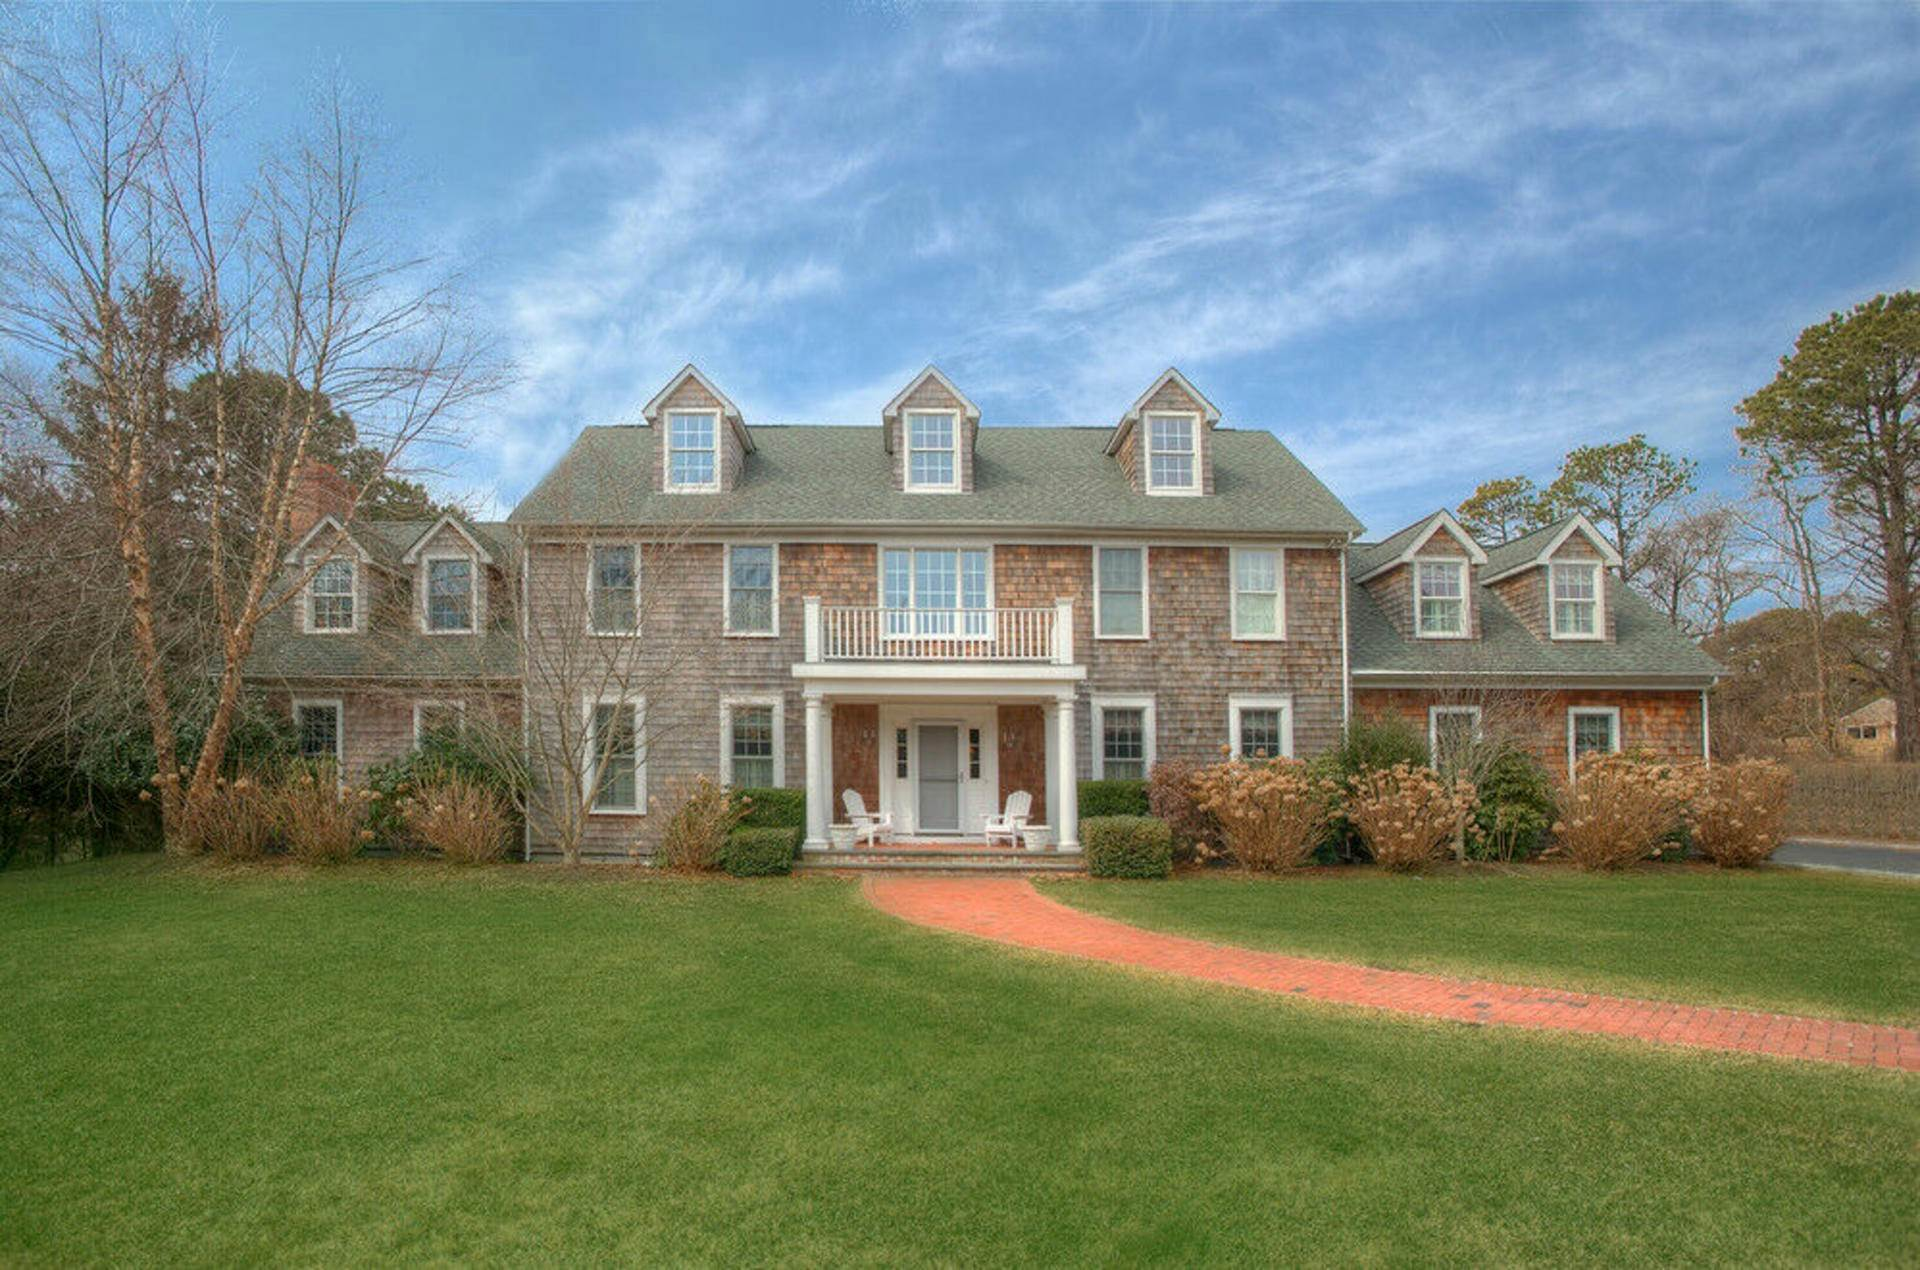 Single Family Home at The Perfect Southampton Getaway... 270 Montauk Highway, Southampton, NY 11968